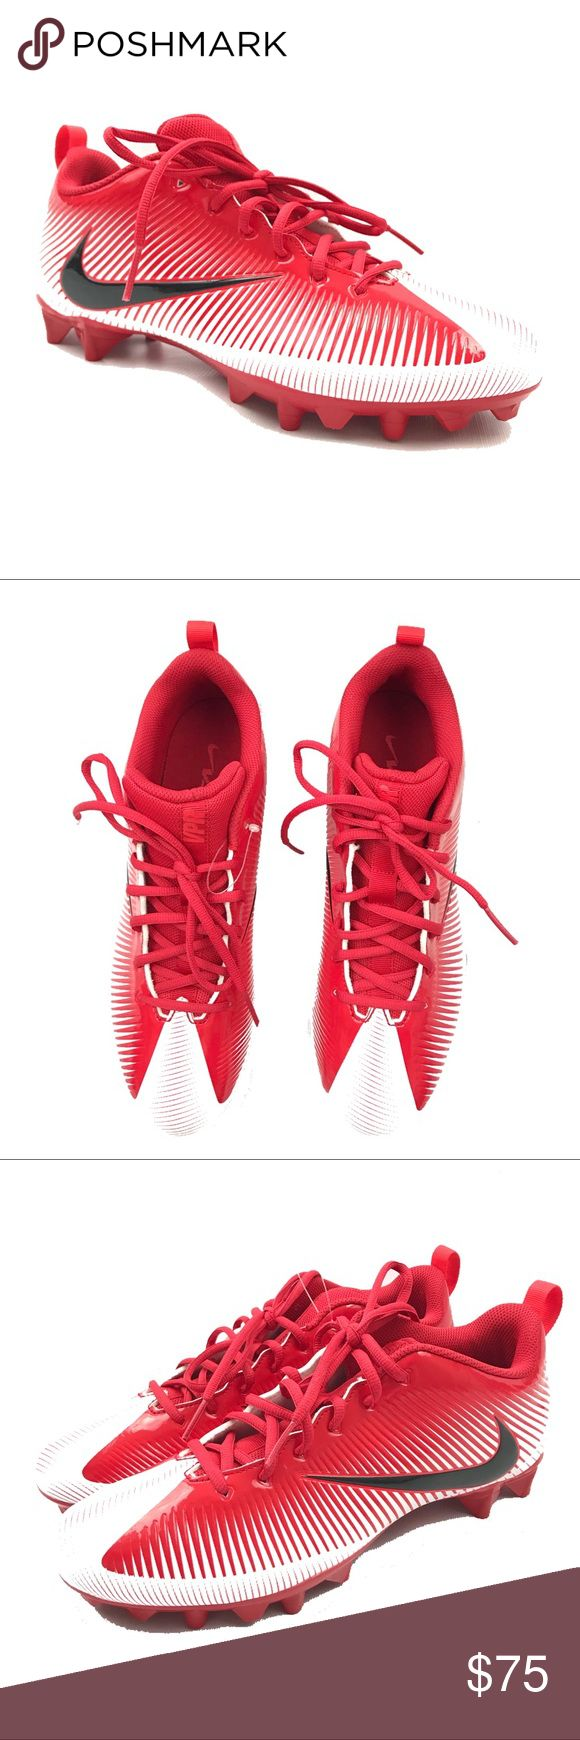 Nike Size 12 Mens Football Cleats VPR Red New New without box Nike Shoes Athletic Shoes